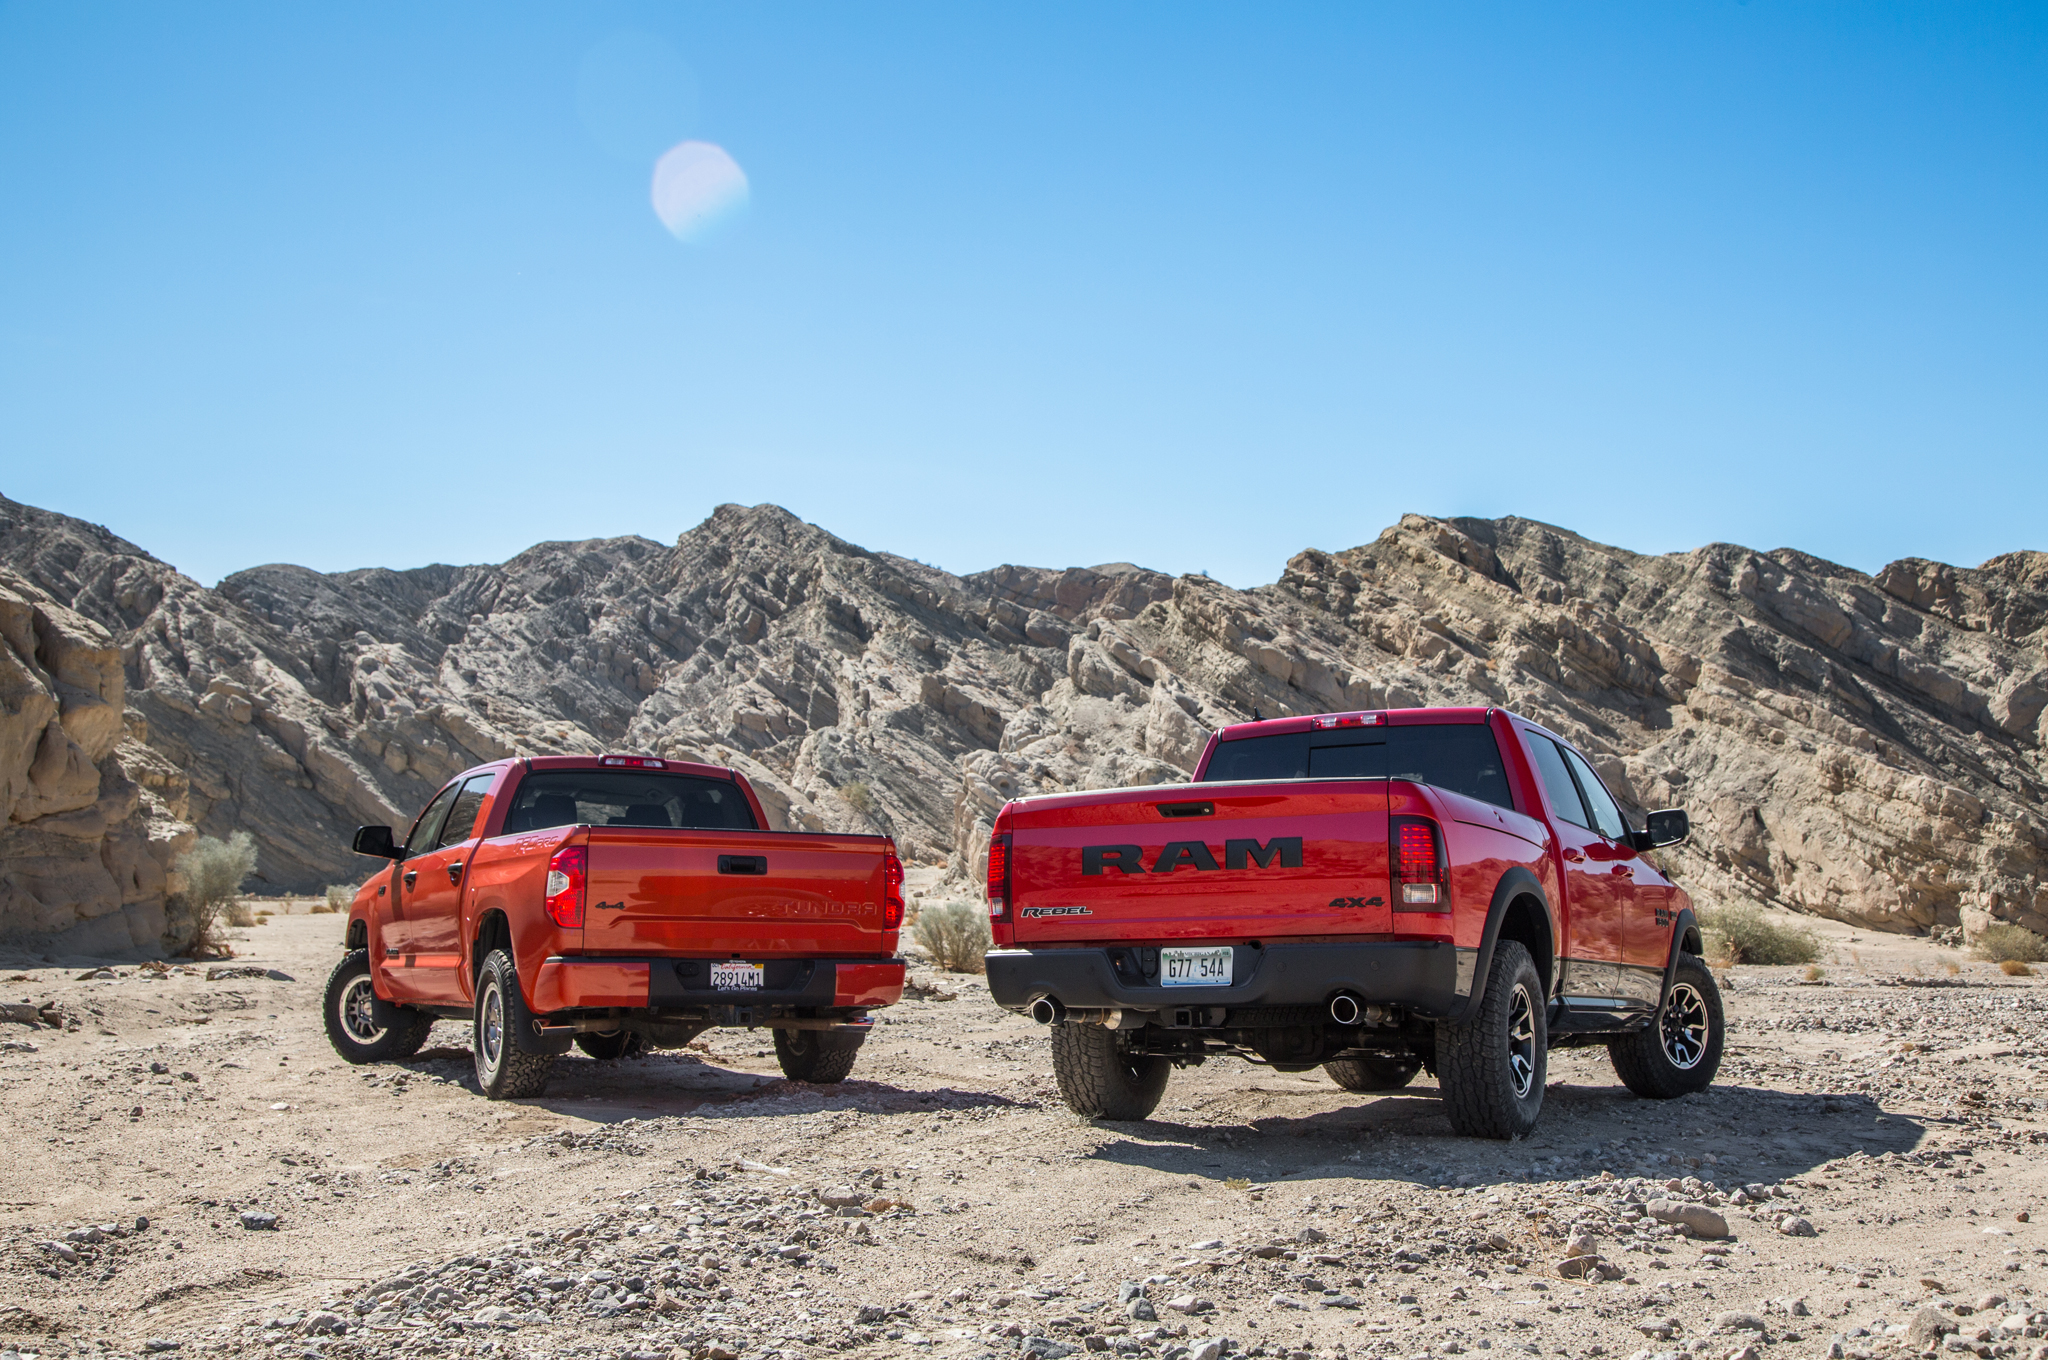 Simple 2015 Ram 1500 Rebel 4x4 Hemi Vs 2015 Toyota Tundra TRD